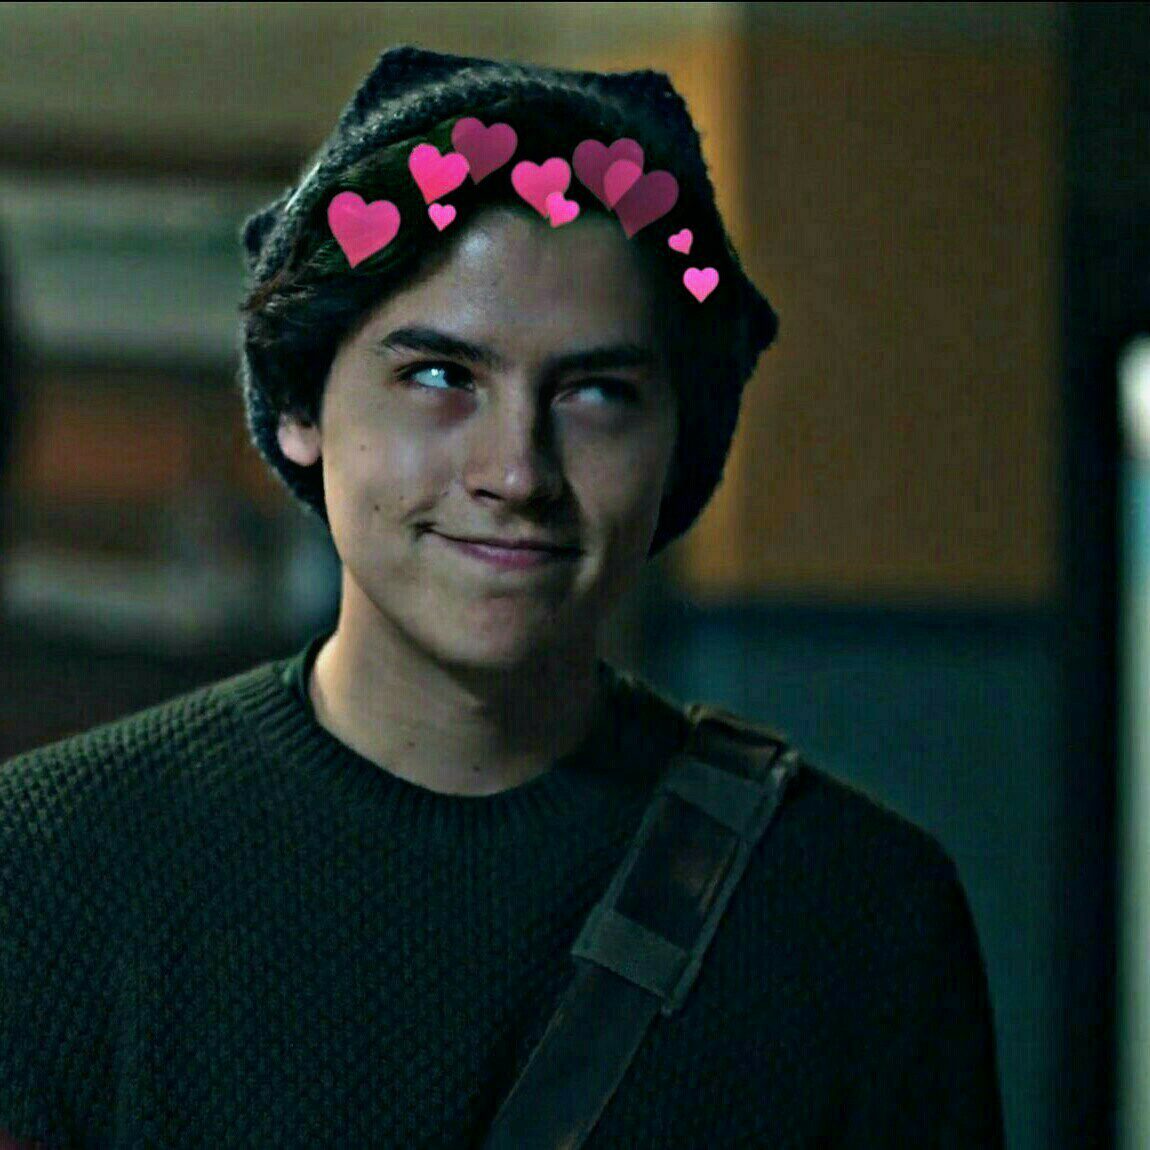 cole sprouse #coleanddylansprouse